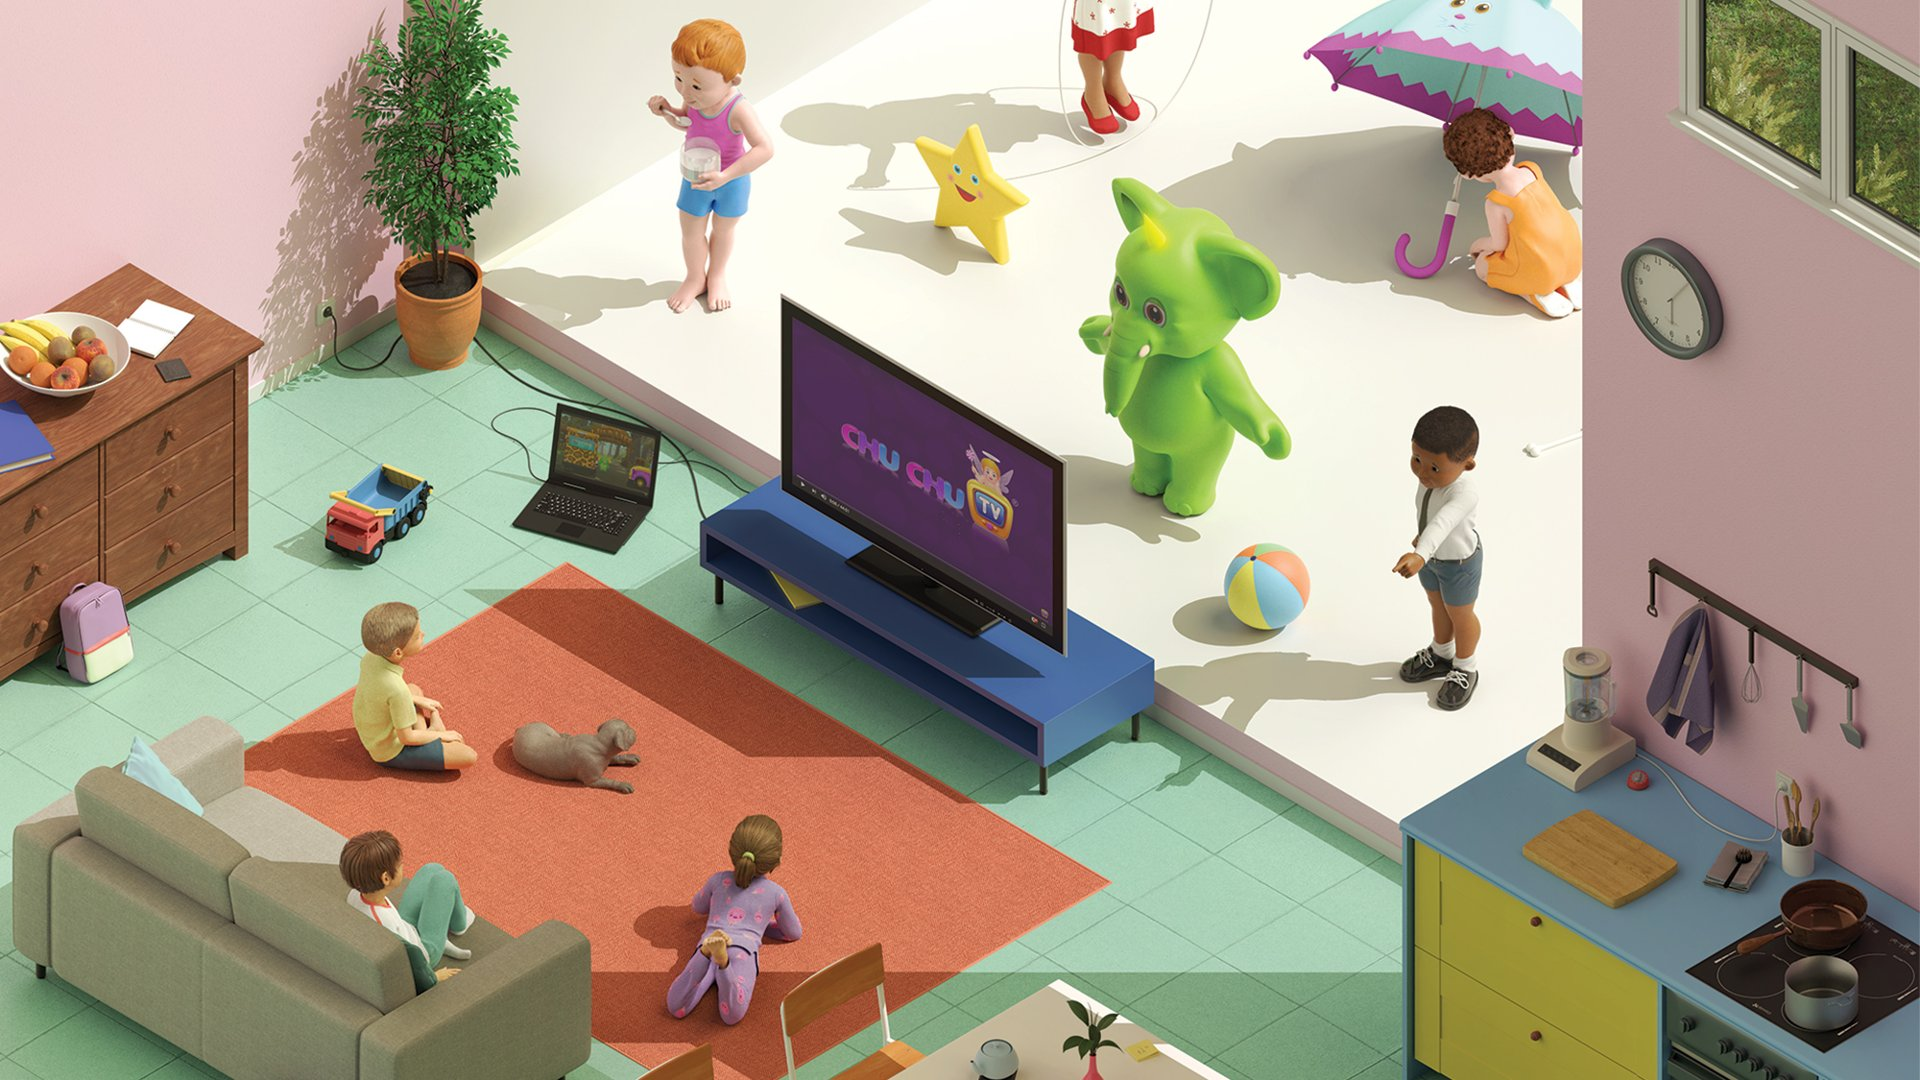 A Look At Chuchu Tv The Chennai Based Youtube Channel For Kids With 19b Views And 29m